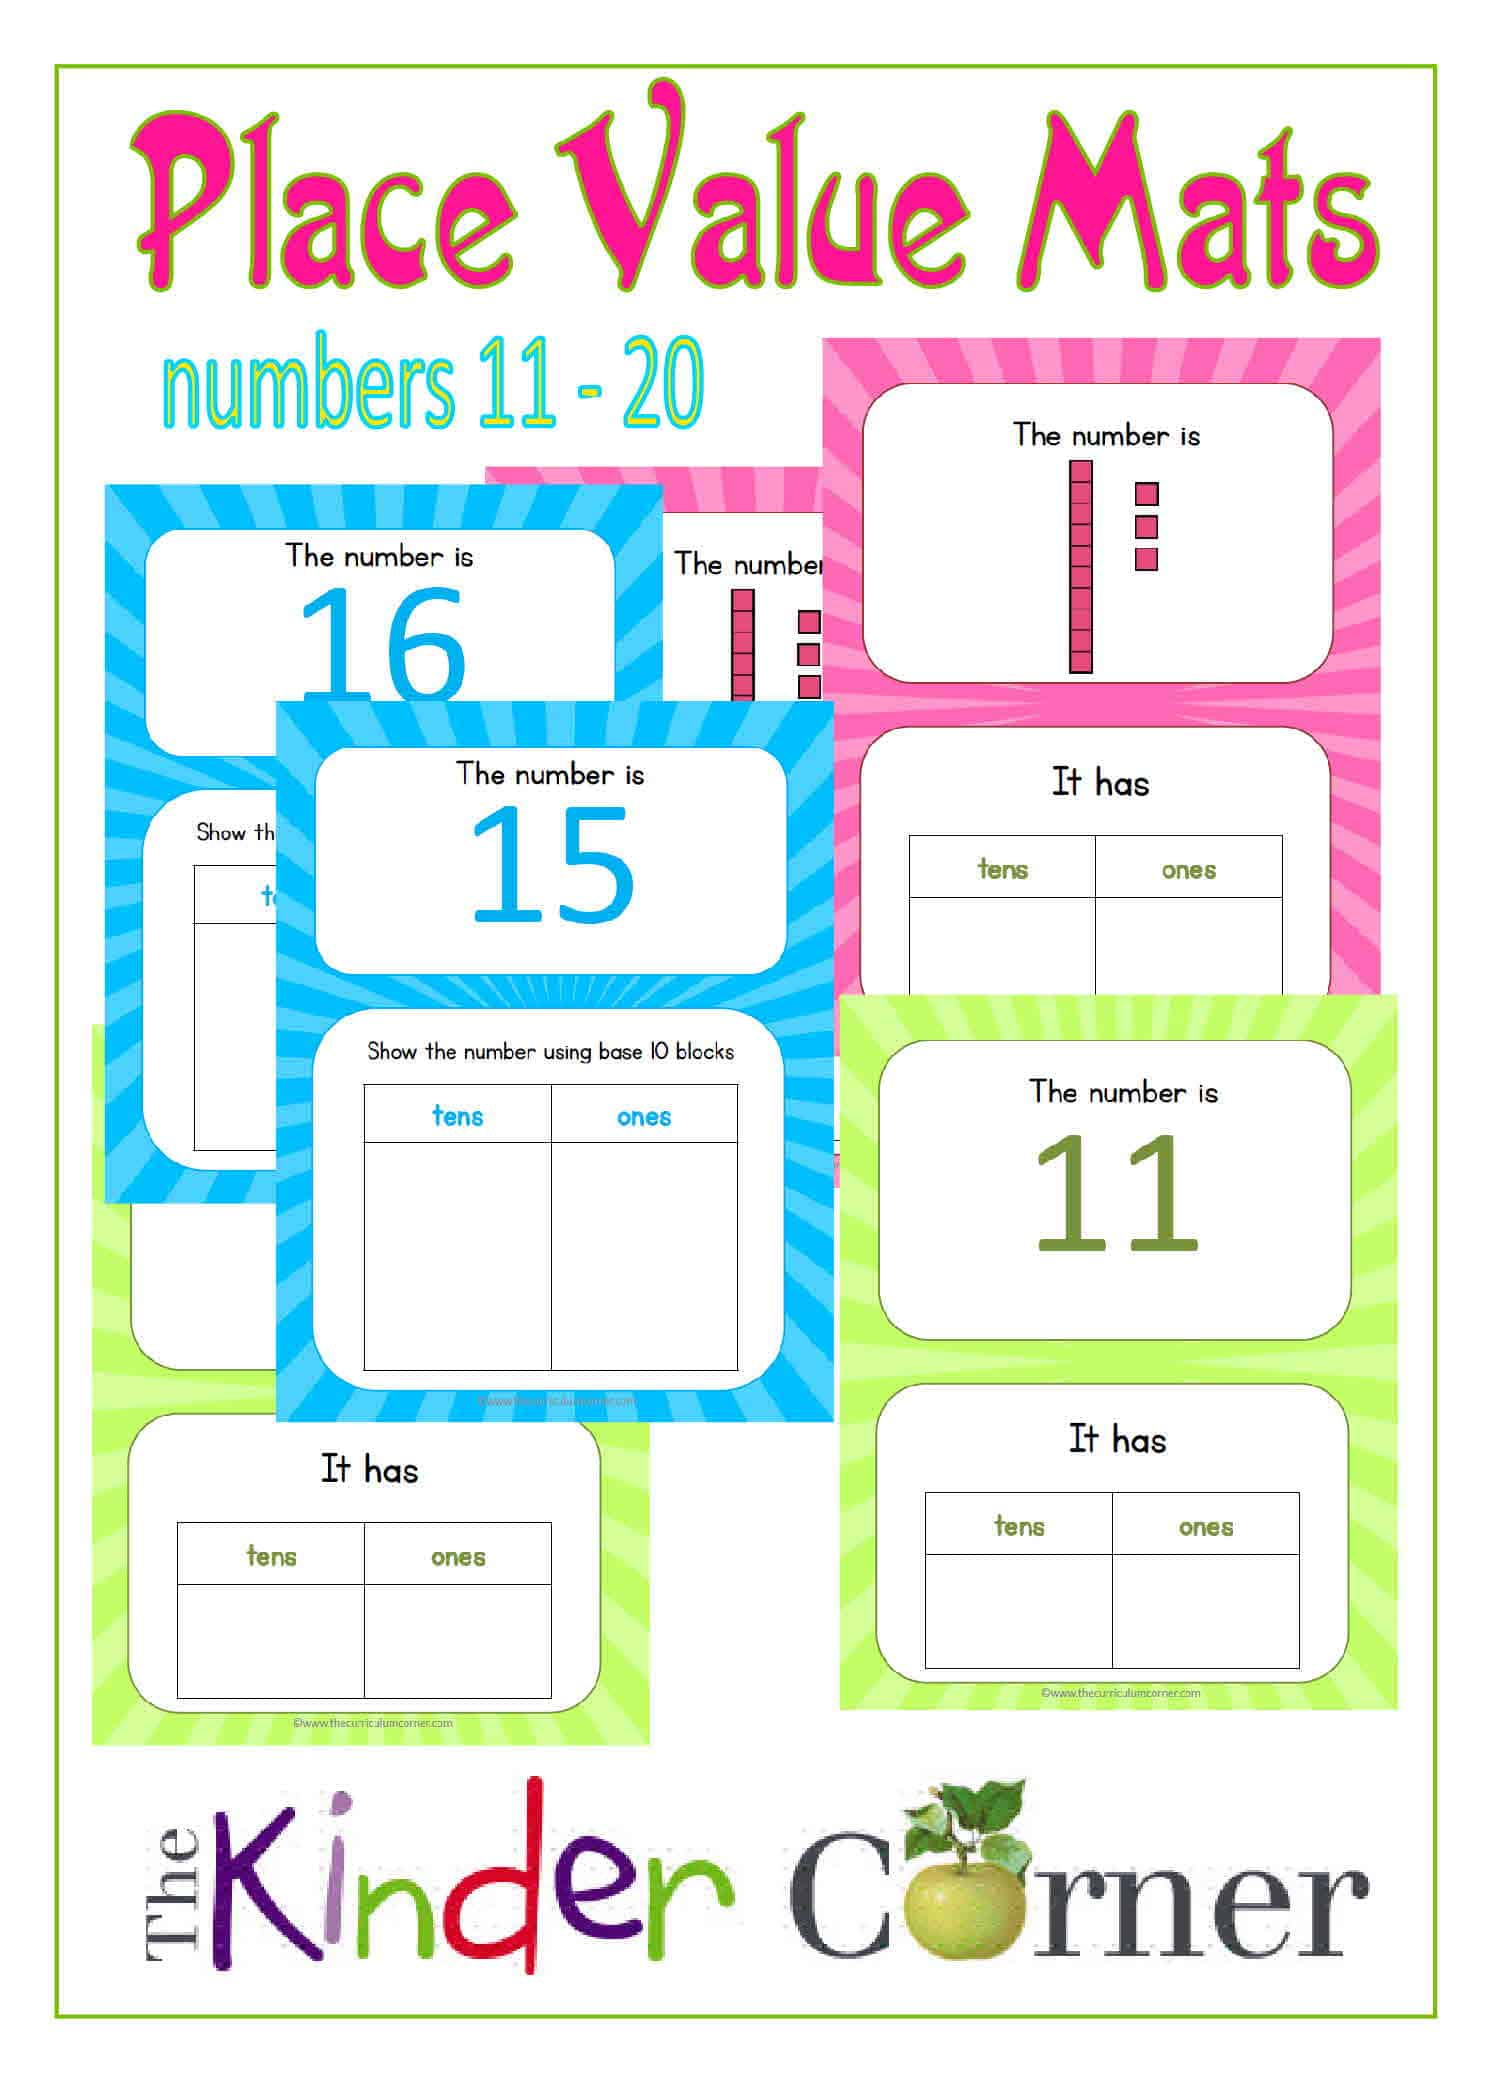 Place Value Mats for 11 – 20